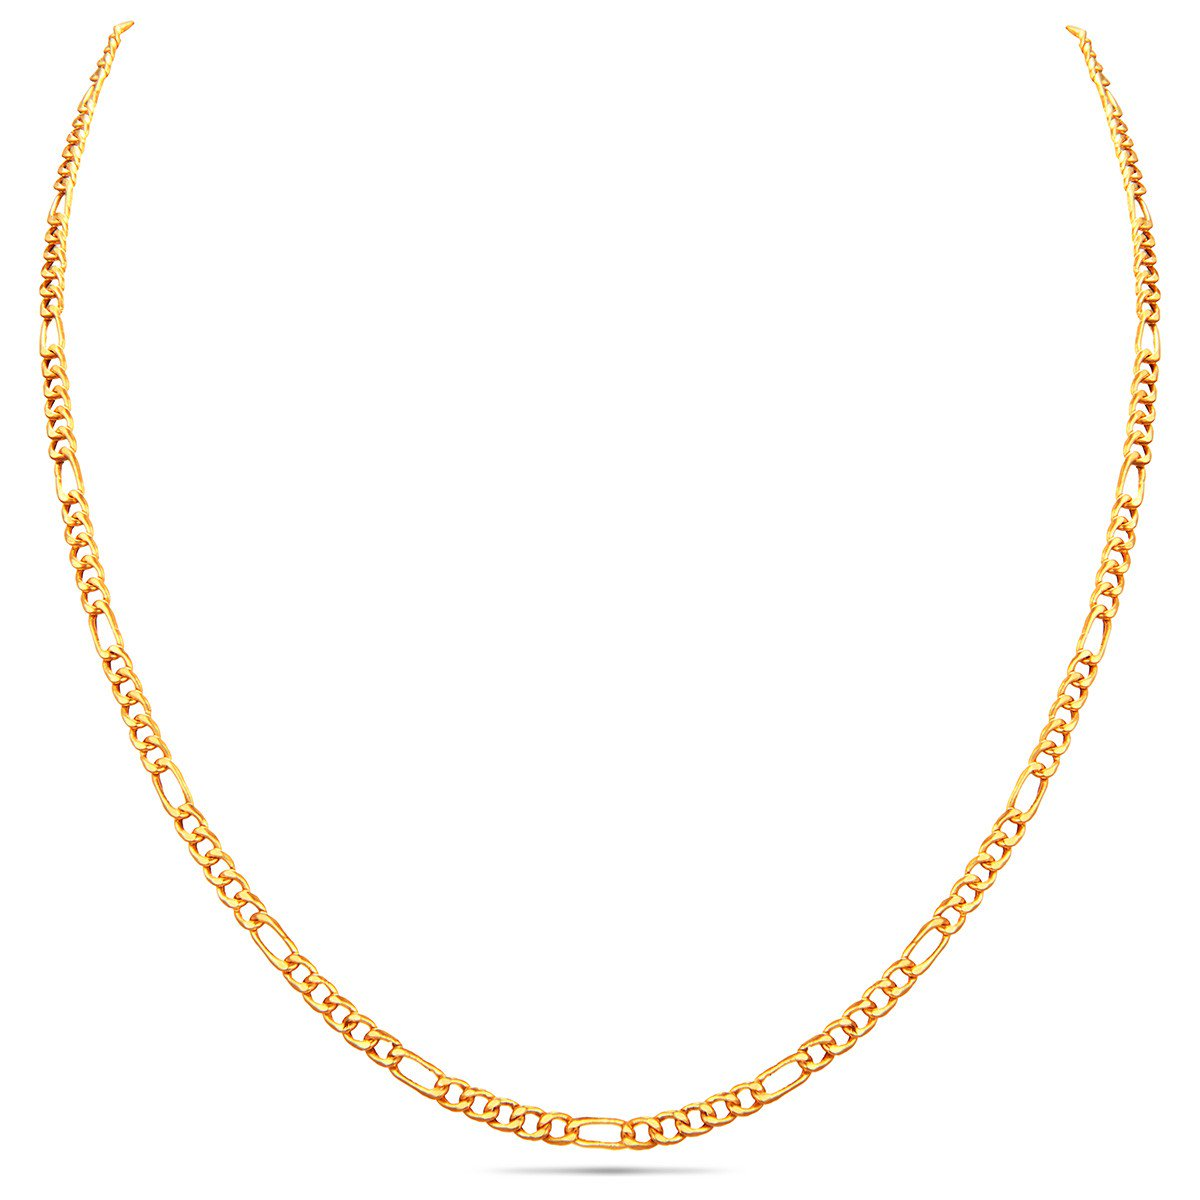 Interlocked Gold Chain